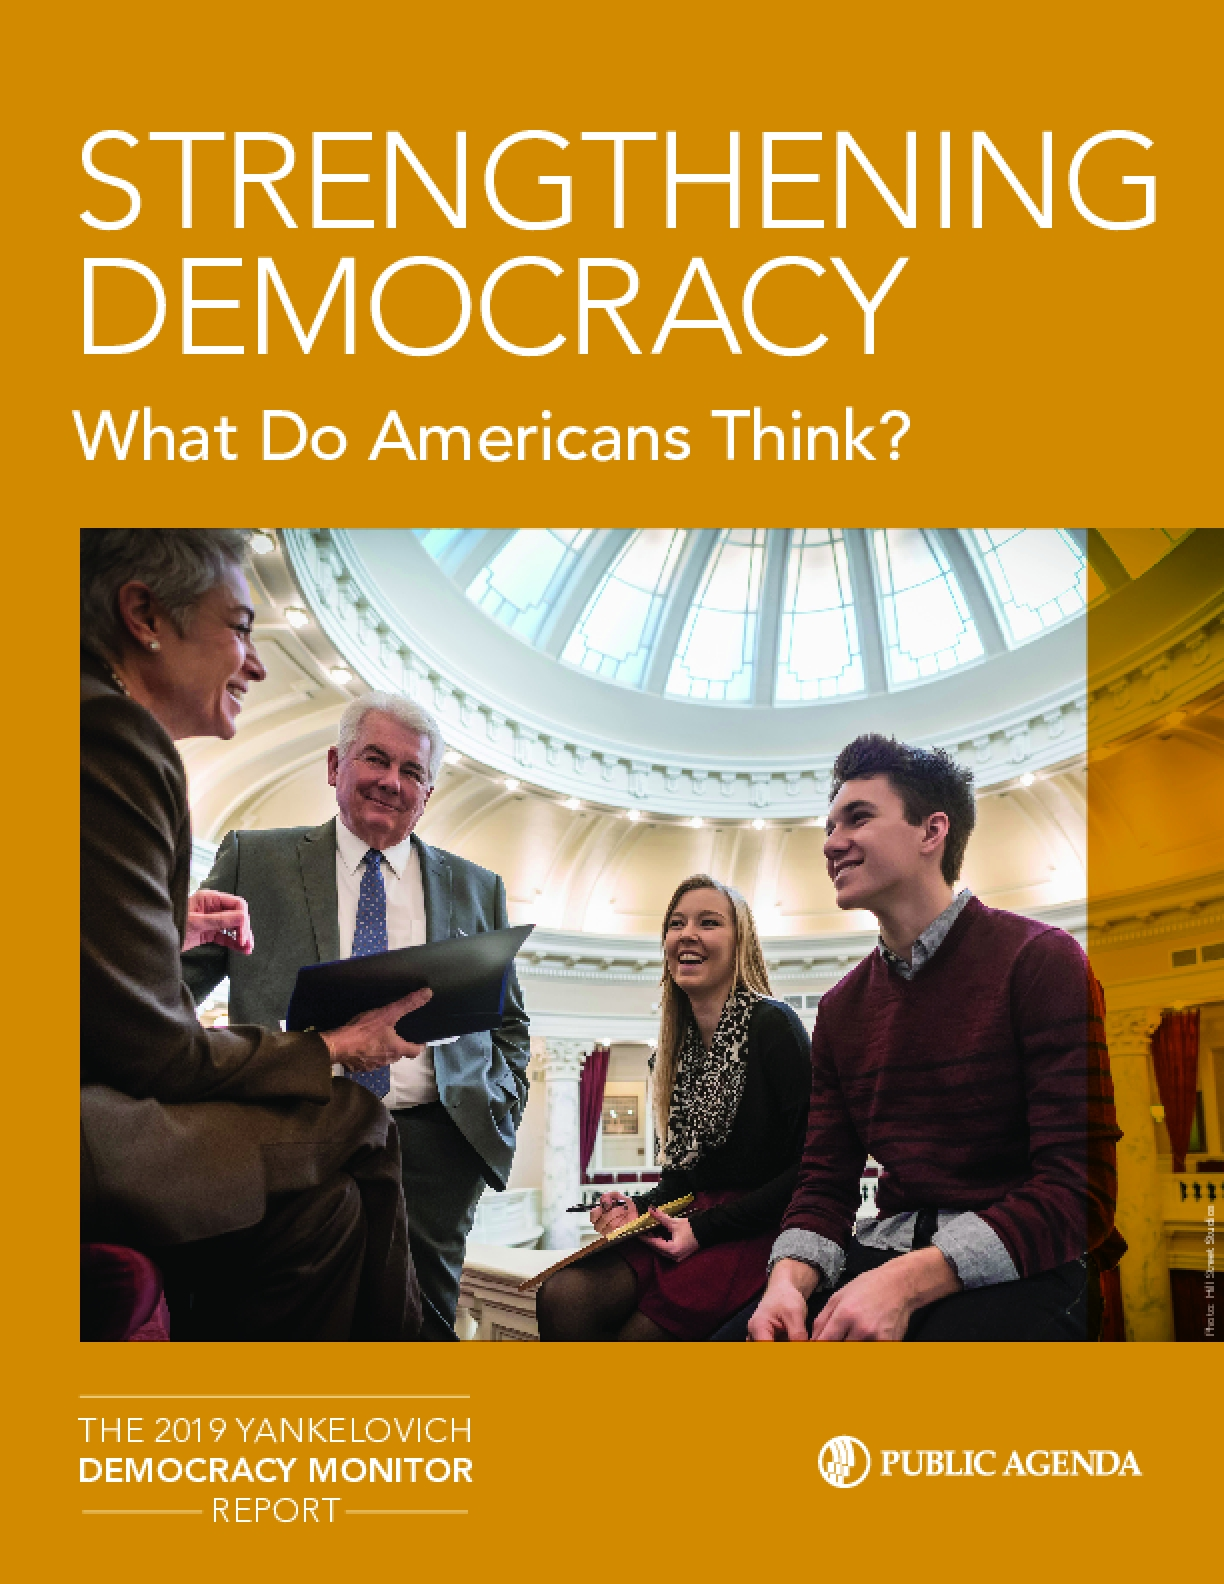 Strengthening Democracy: What Do Americans Think?